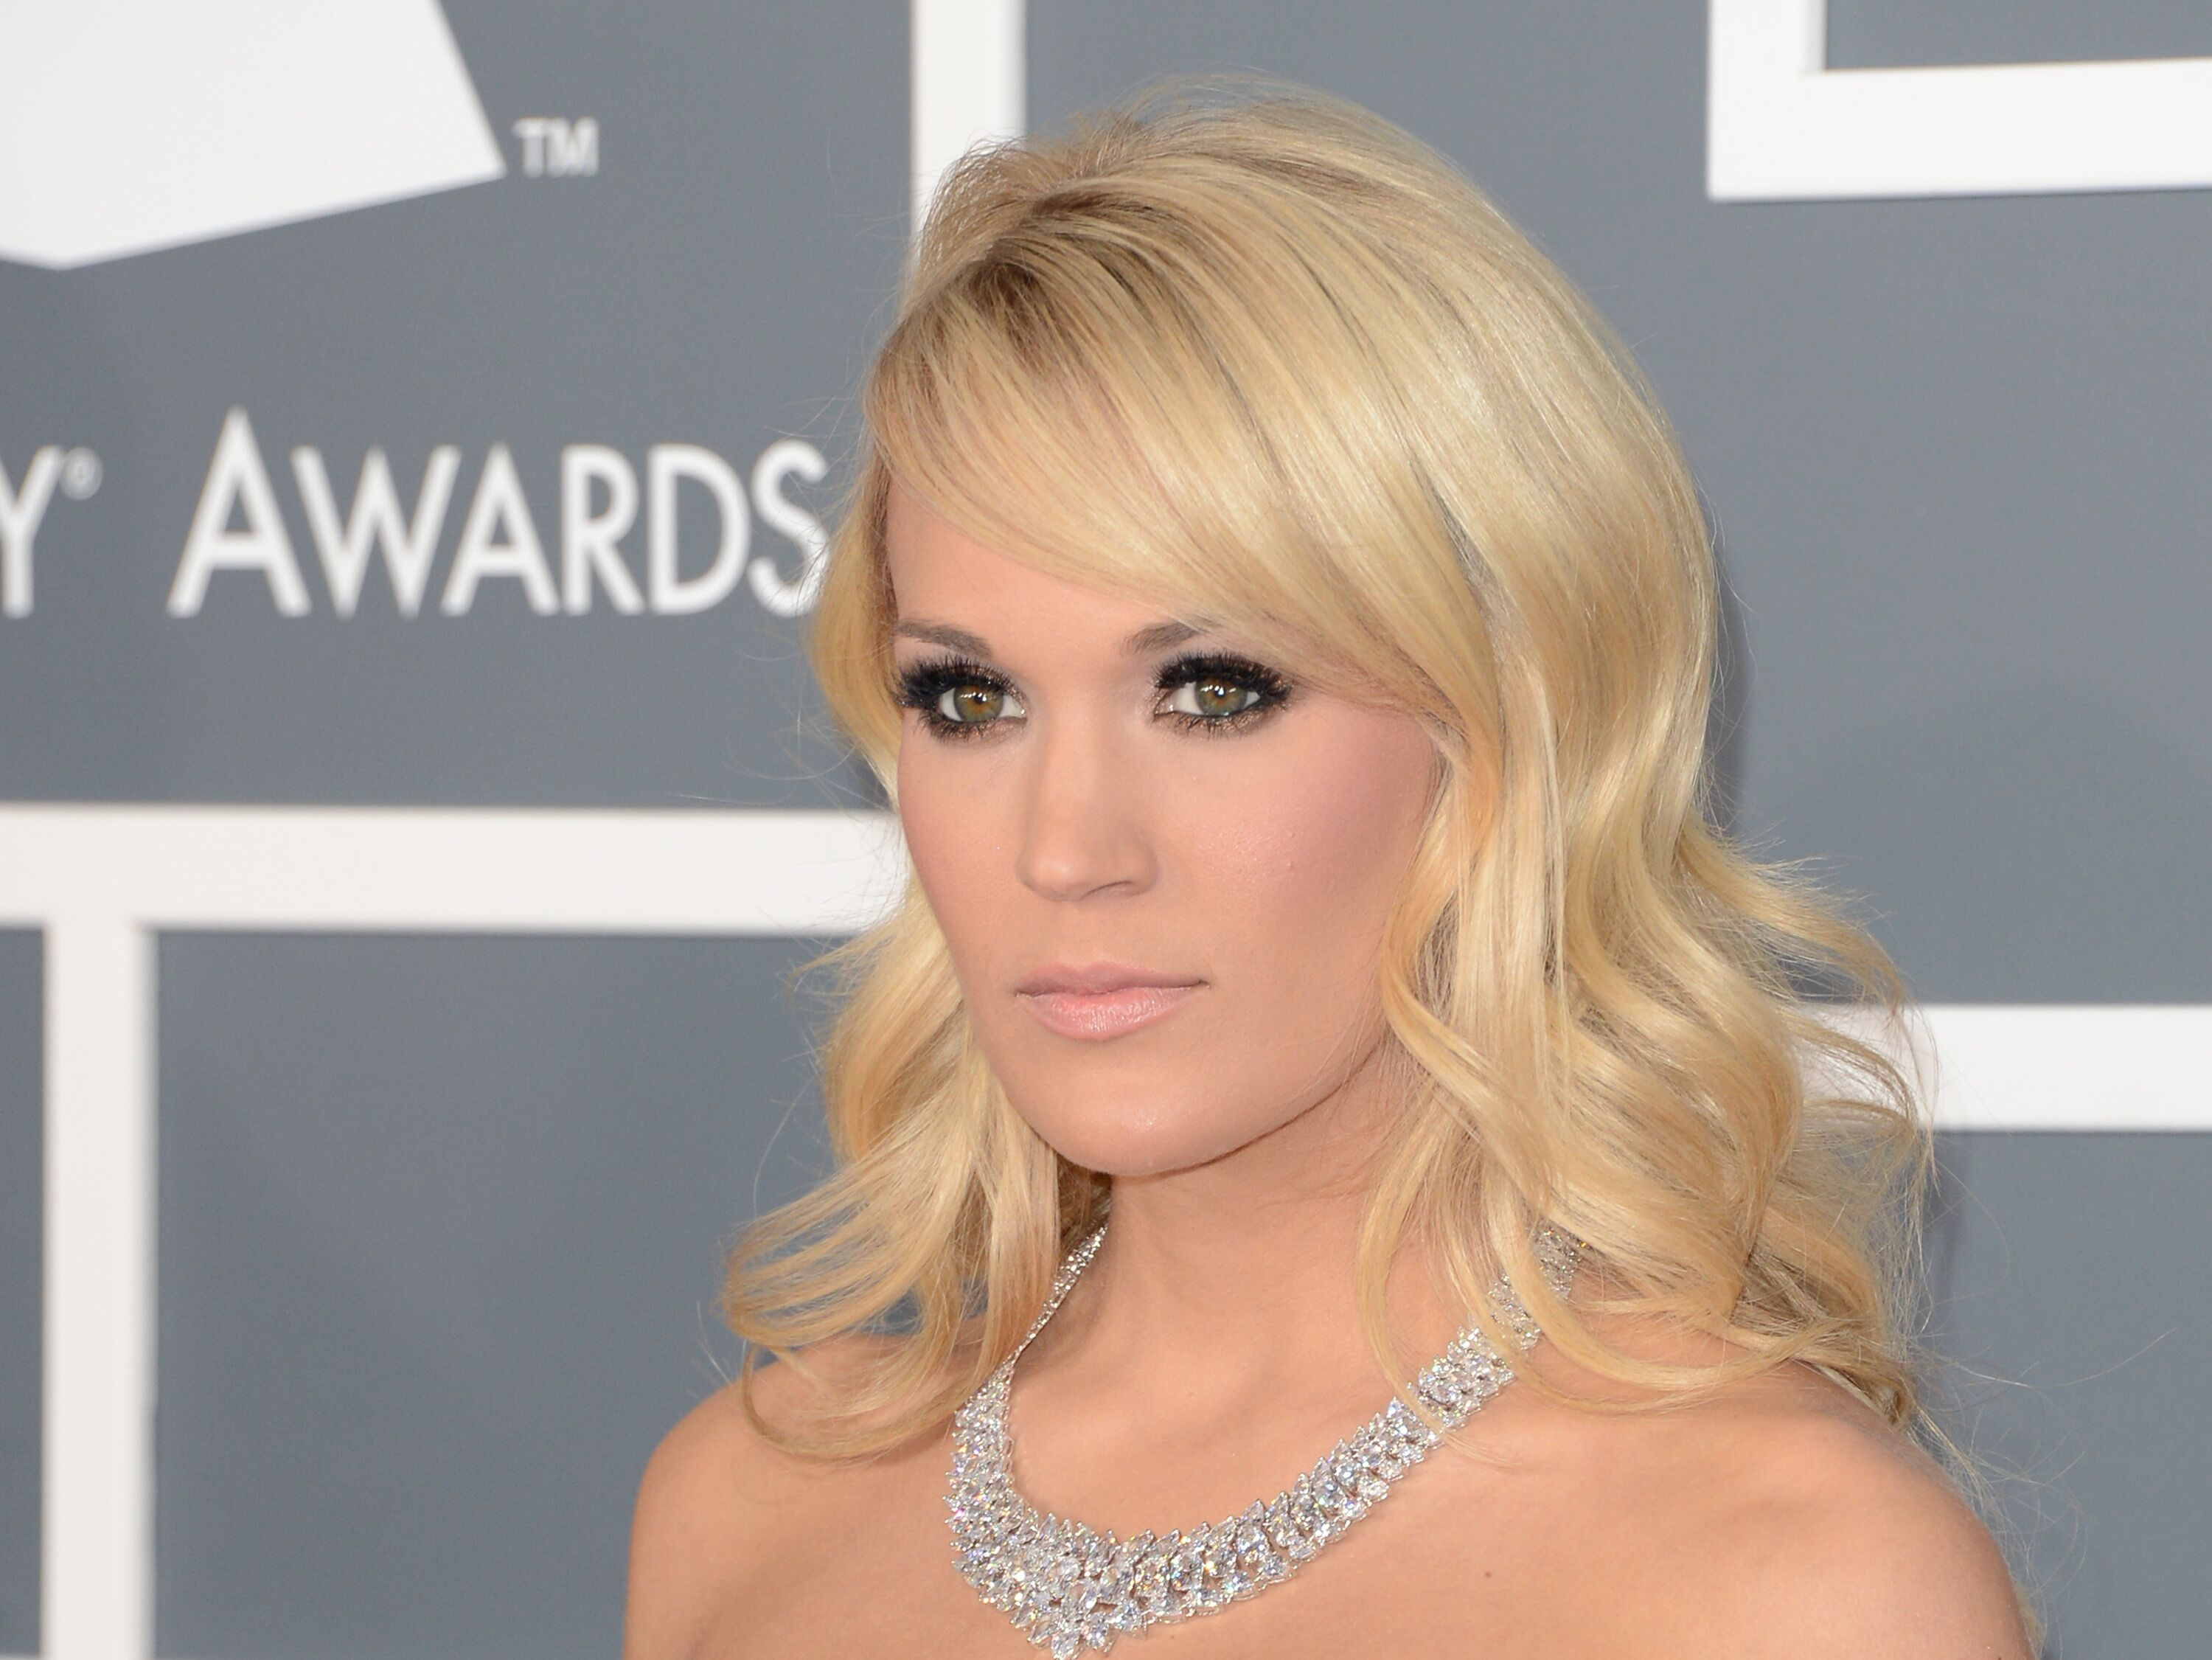 Carrie Underwood at the 55th Annual GRAMMY Awards in Los Angeles, California | Source: Getty Images